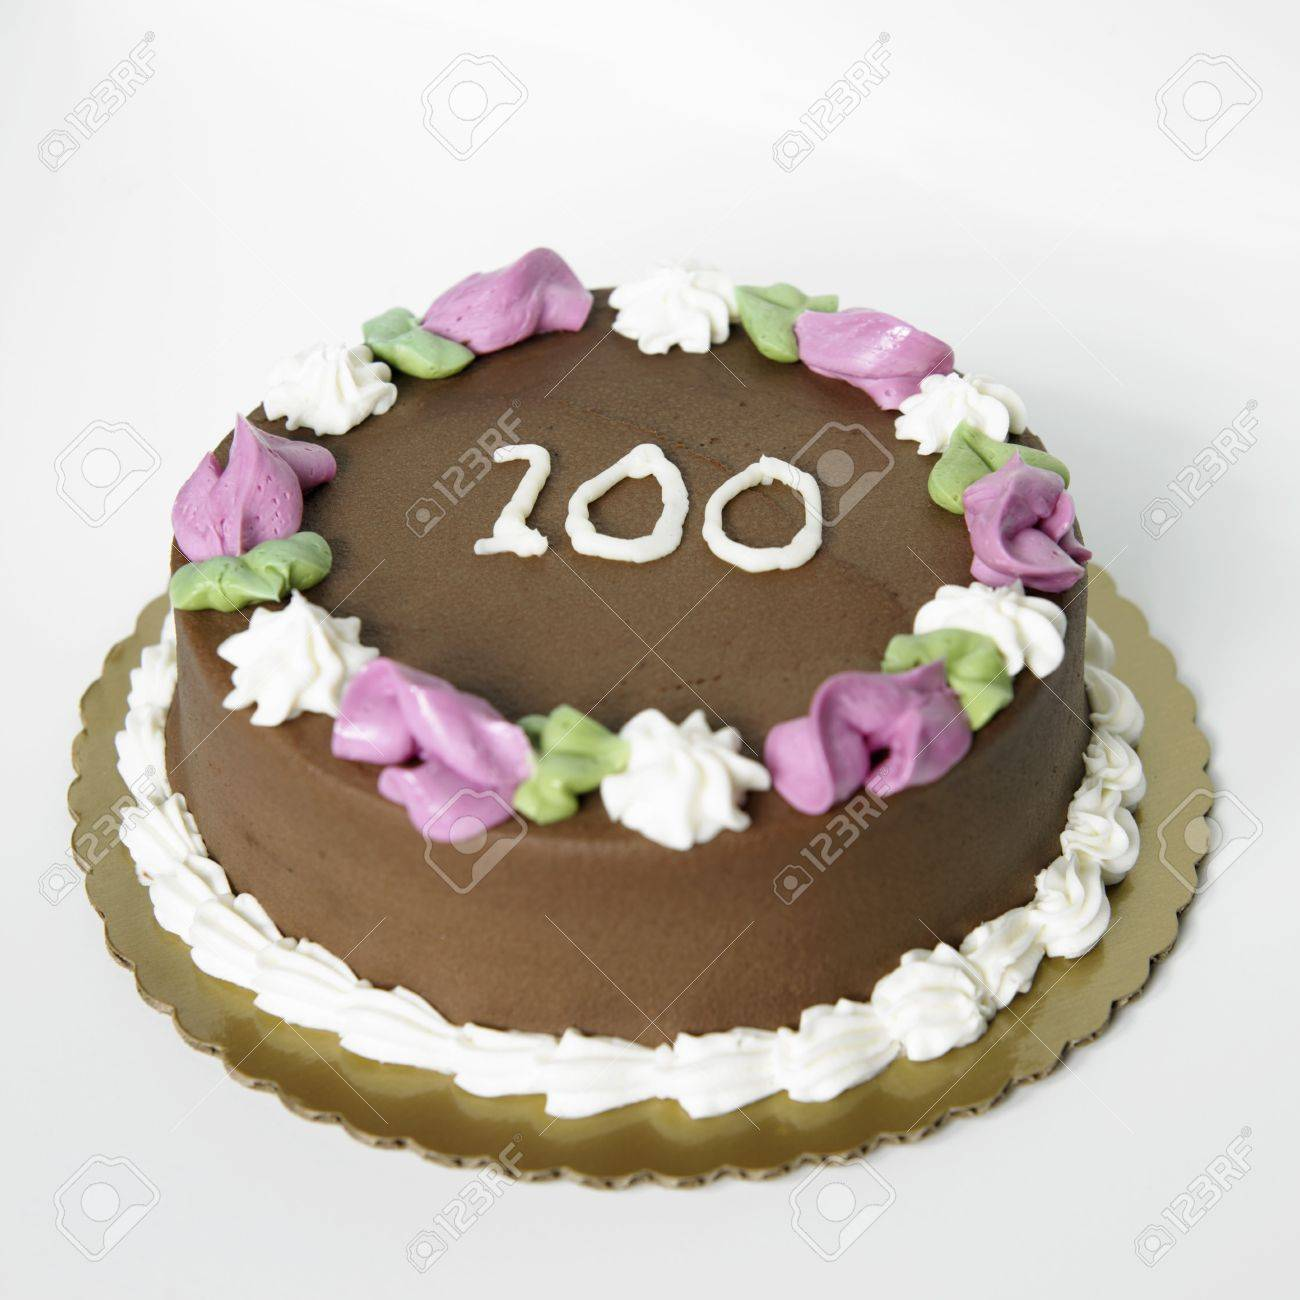 Chocolate Frosted Birthday Cake With The Number 100 On It Stock Photo